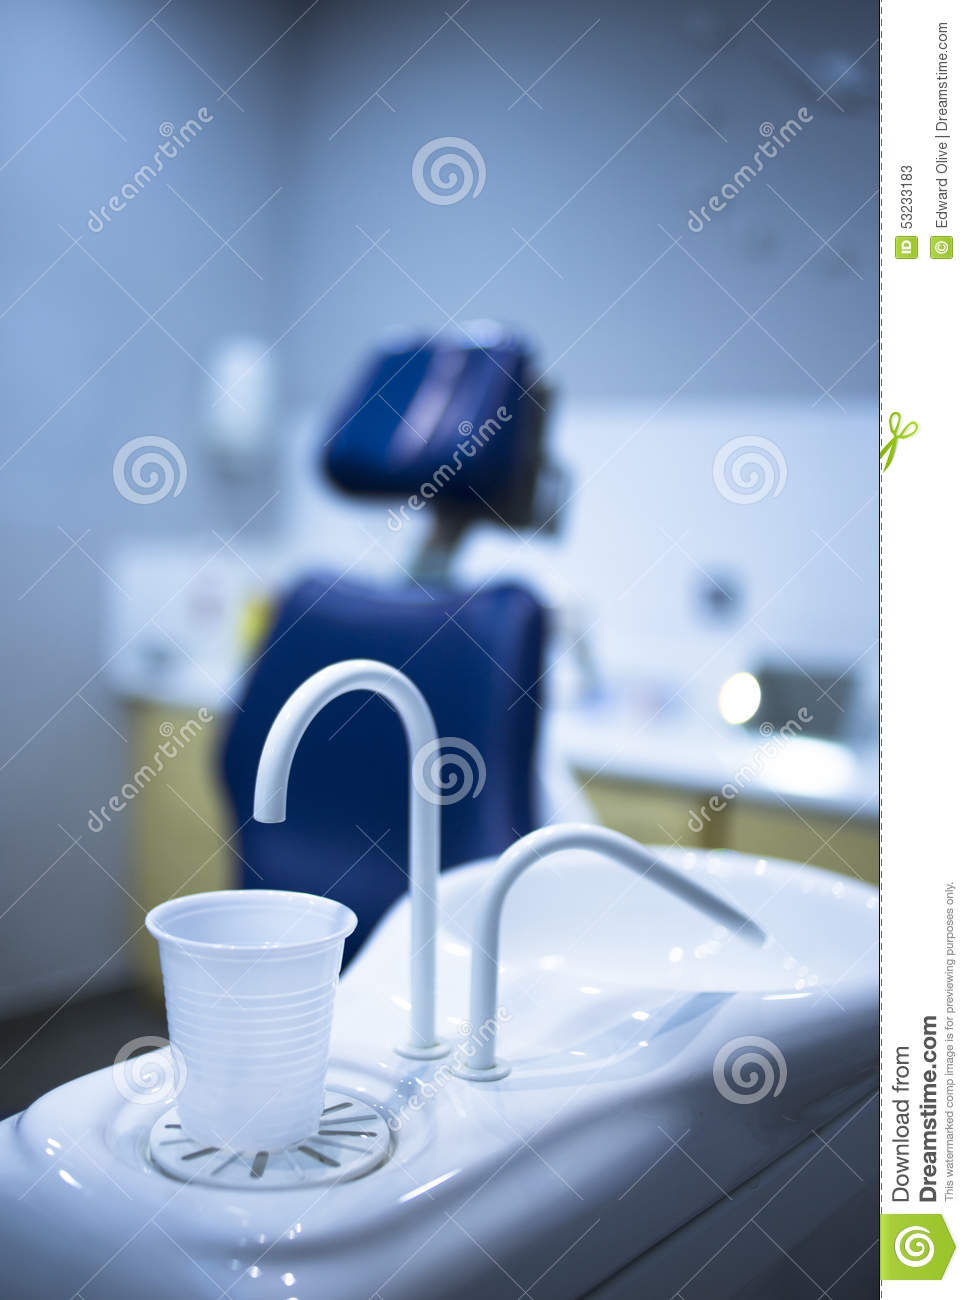 Dentist water rinse cup tap filler in dental clinic dentists